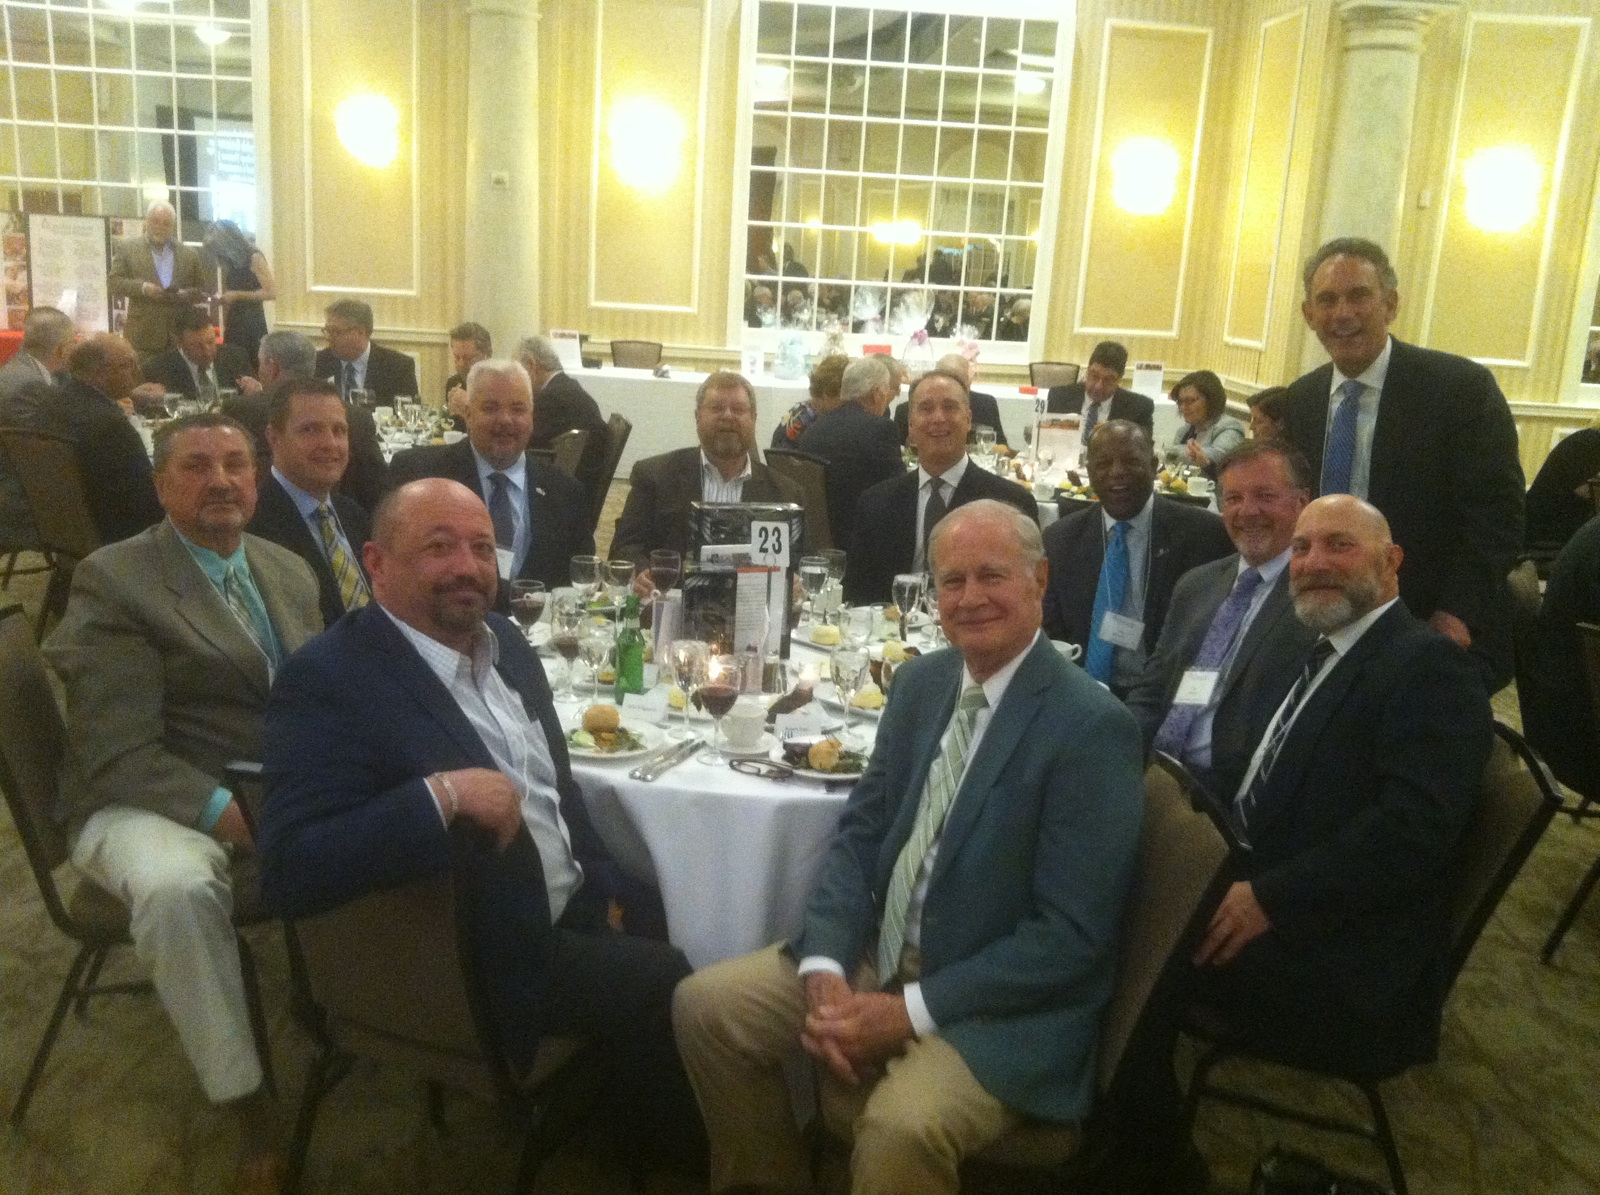 A Great Evening at Catholic Charities Annual Tribute Dinner